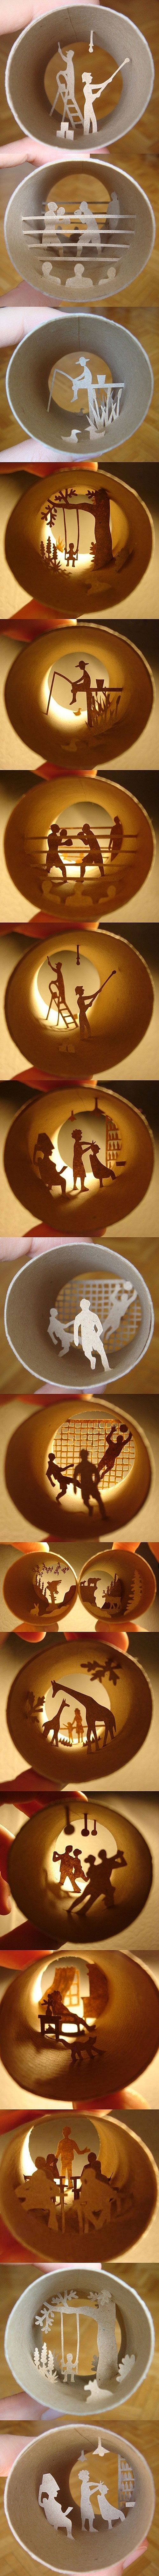 Toilet Paper Roll Artwork; by Anastassia Elias